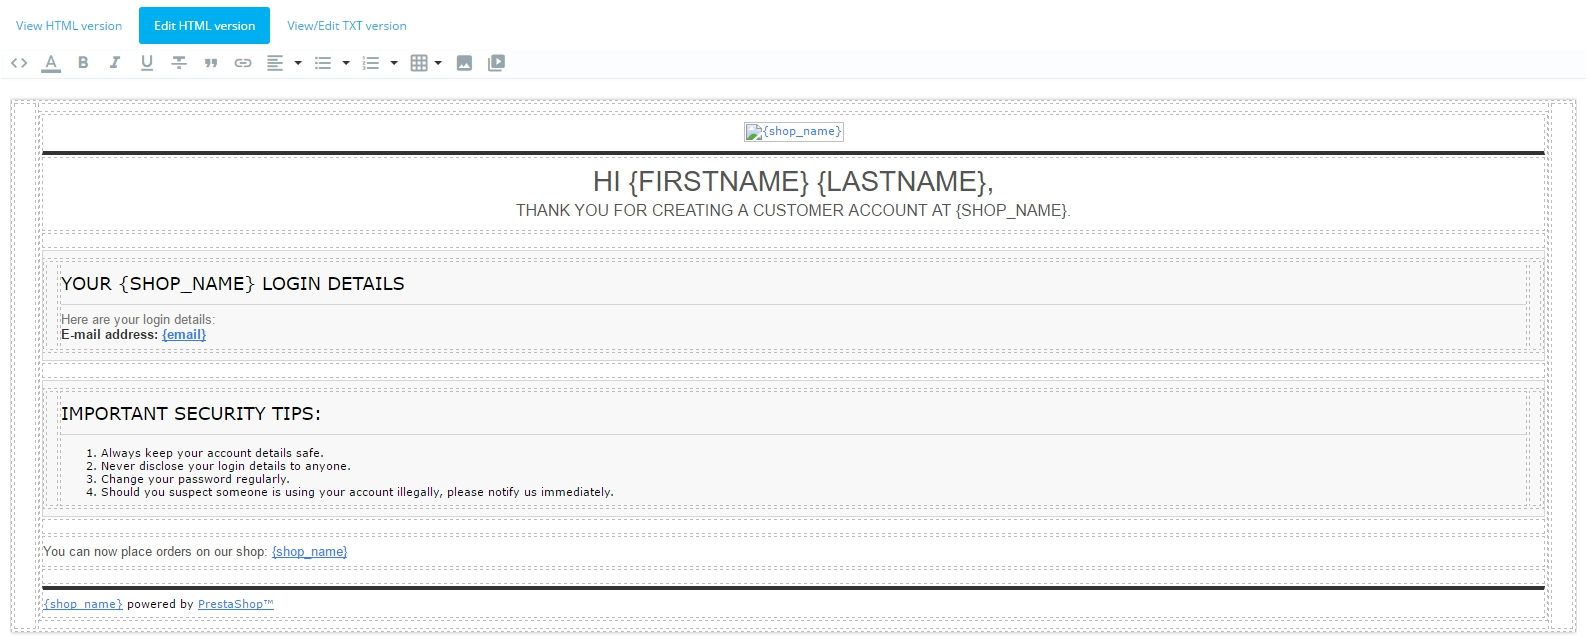 How to Edit Email Templates in Prestashop 1.7